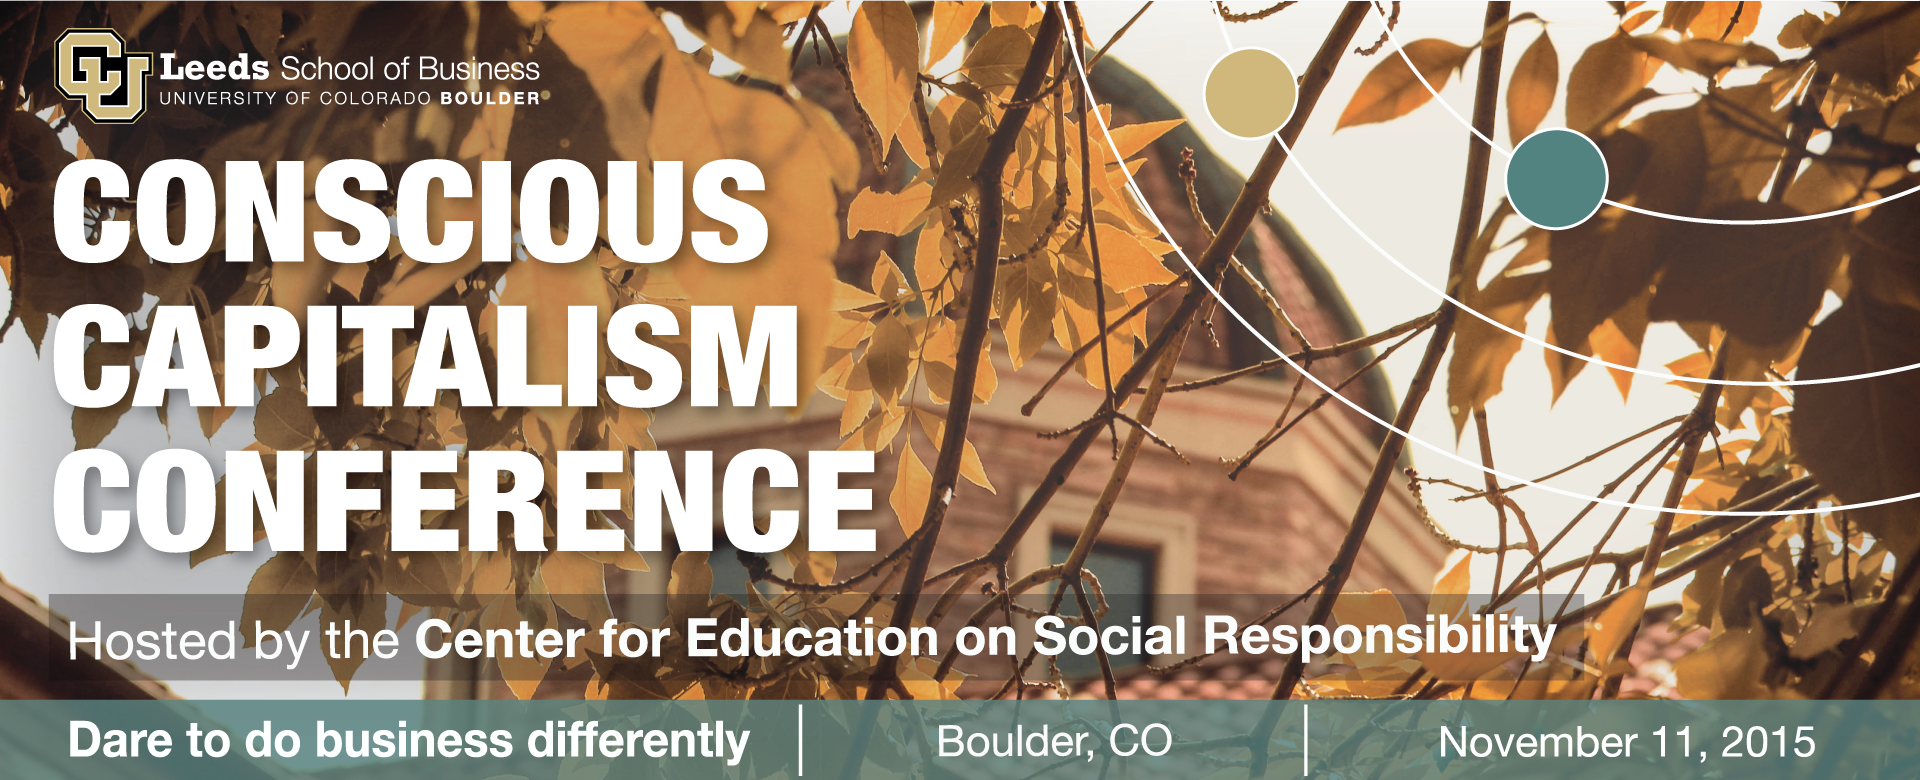 Conscious Capitalism Conference, Center for Education on Social Responsibility